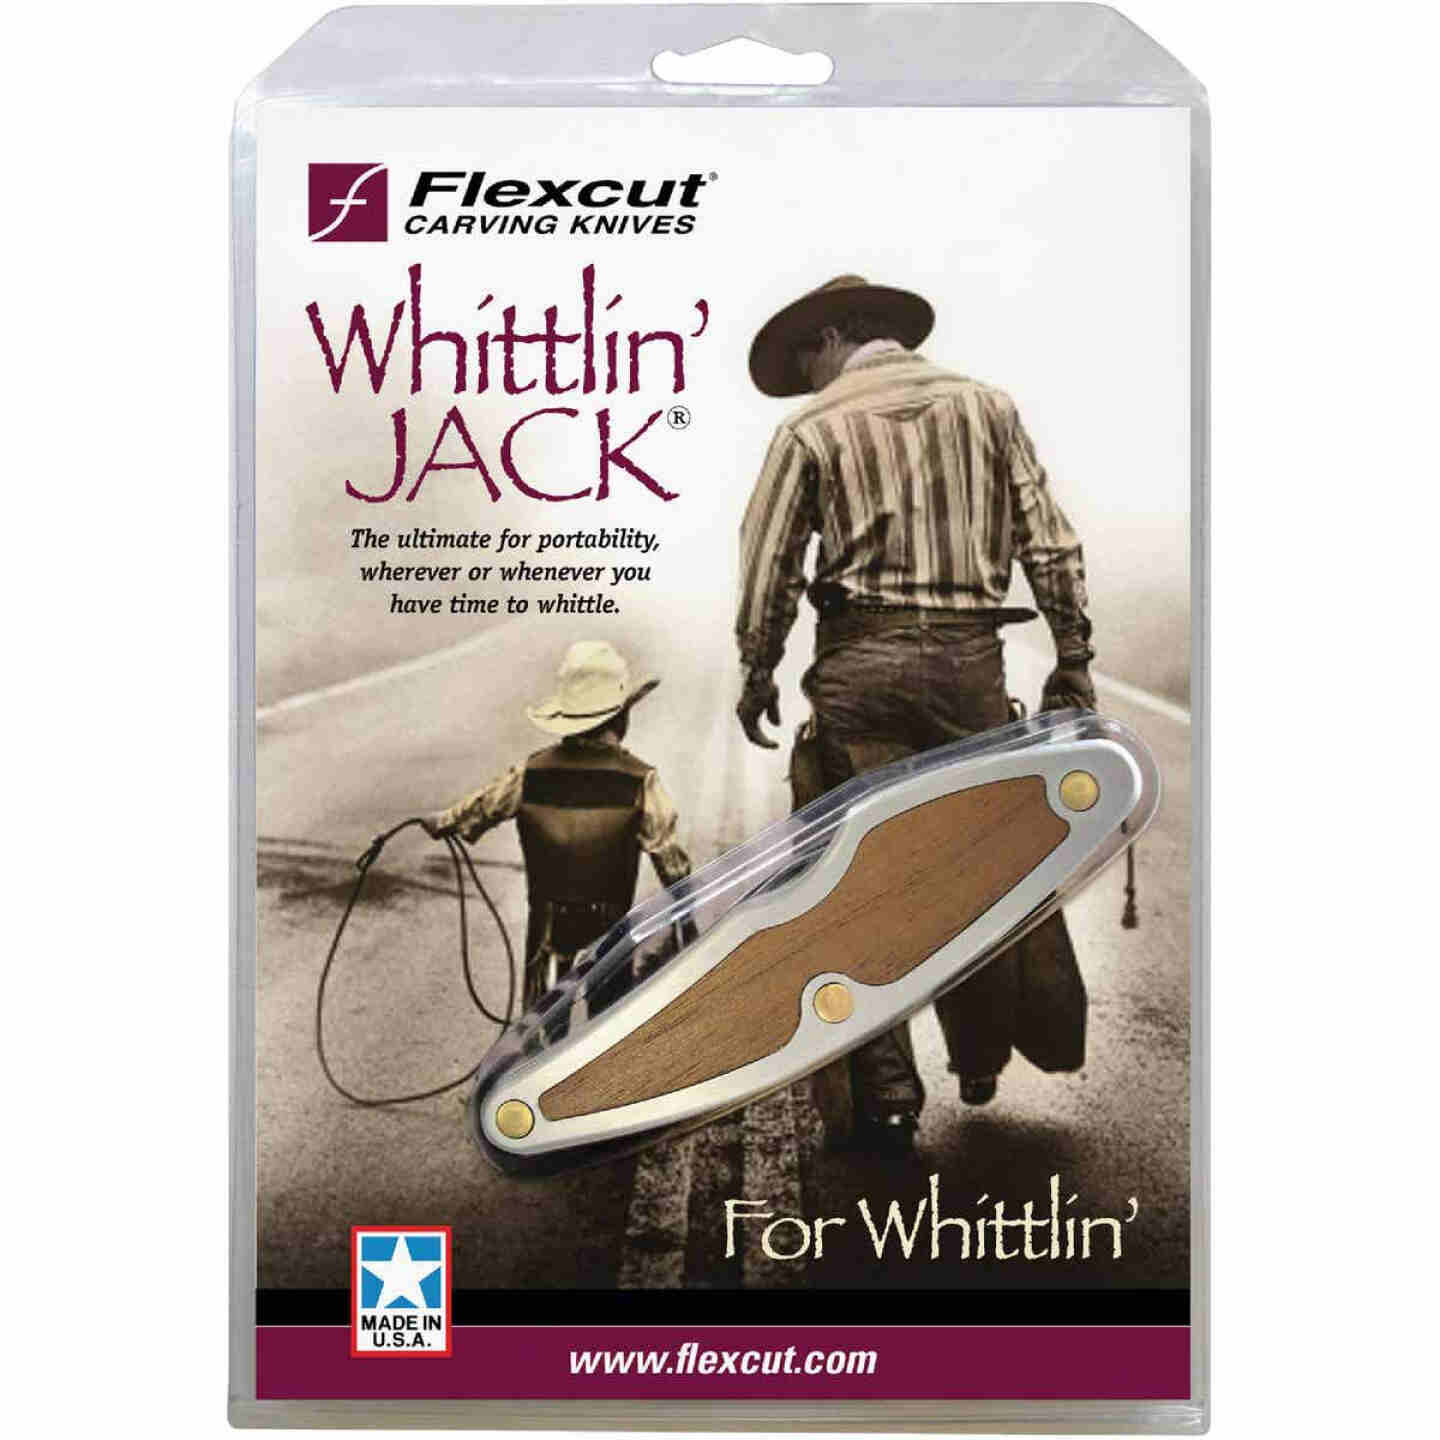 Flexcut Whittlin' Jack Carving Knife with 1-1/2 In. Detail & 2 In. Roughing Blades Image 1